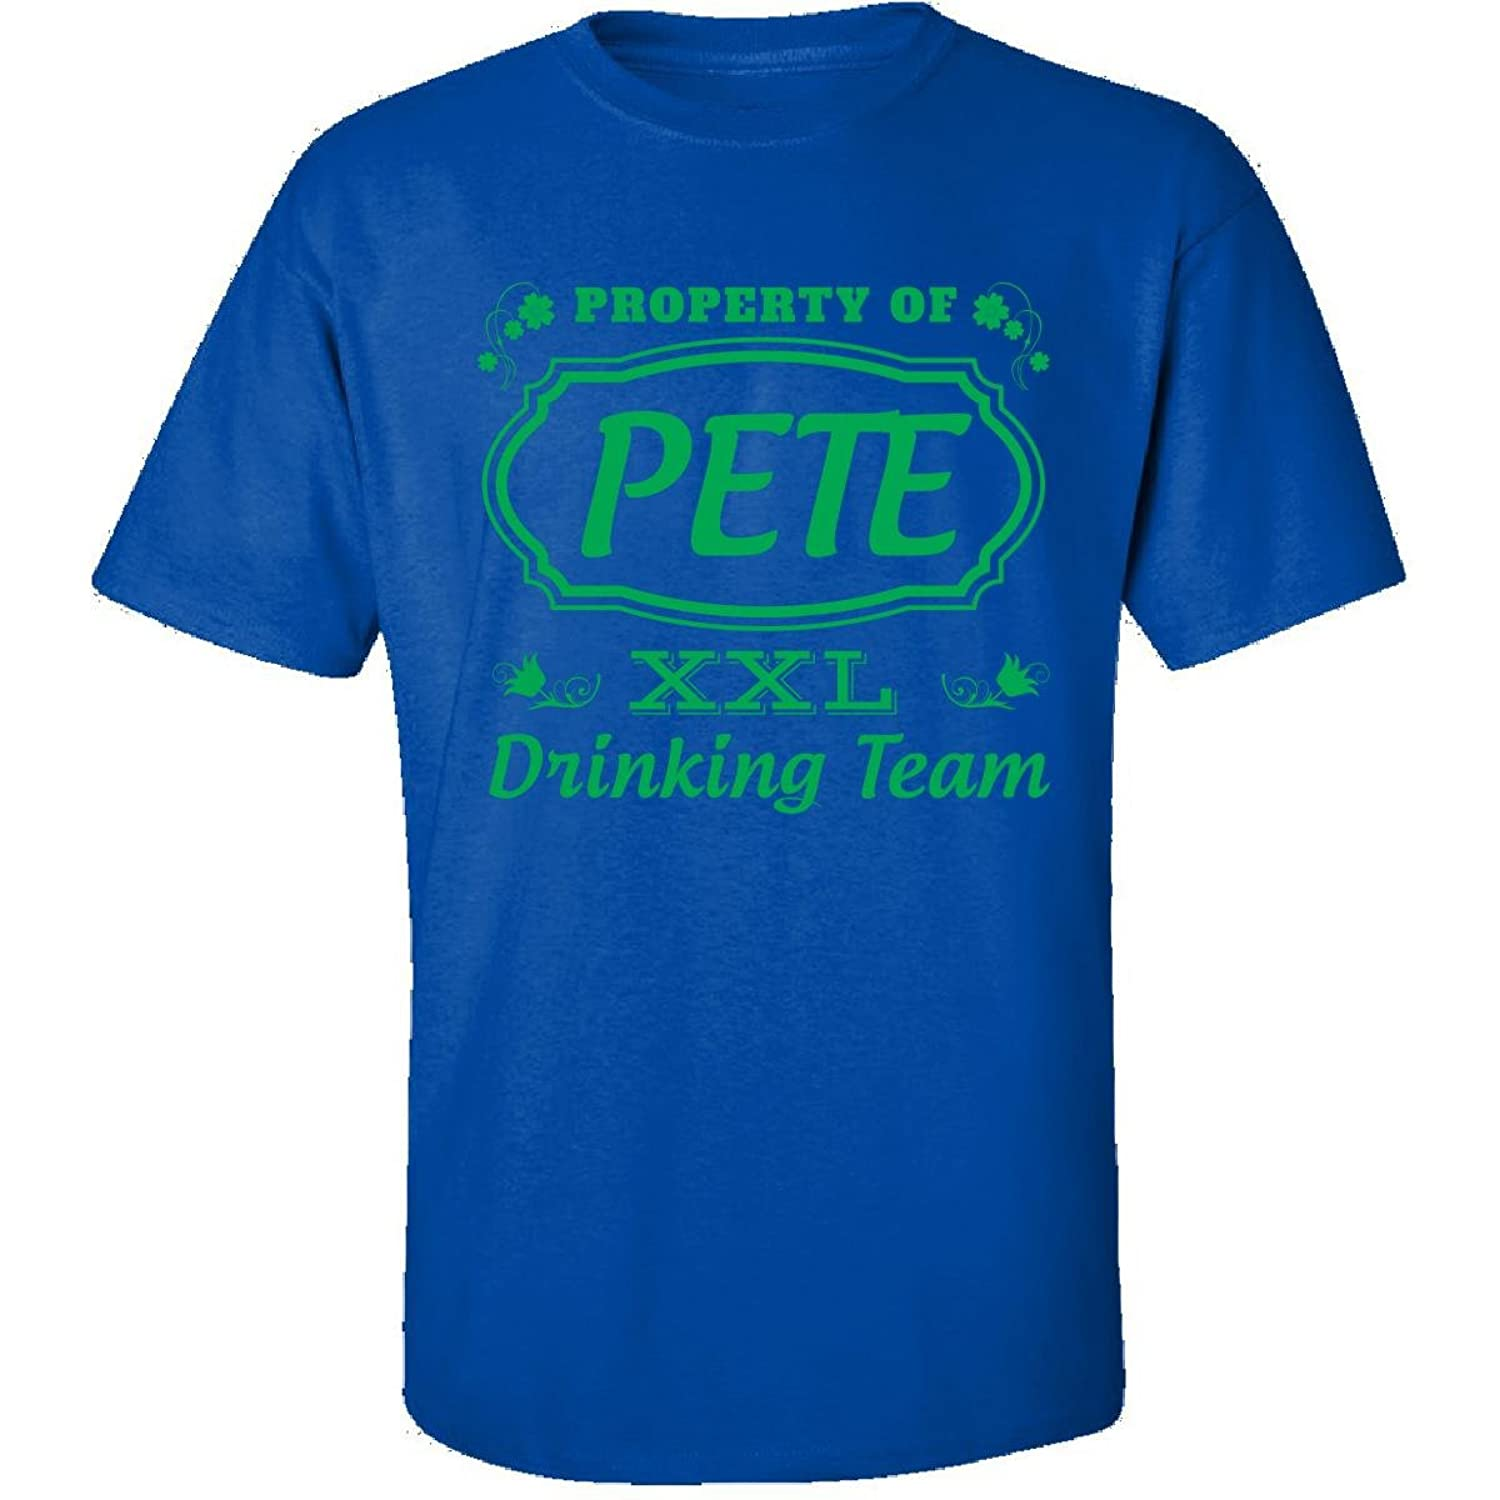 Property Of Pete St Patrick Day Beer Drinking Team - Adult Shirt